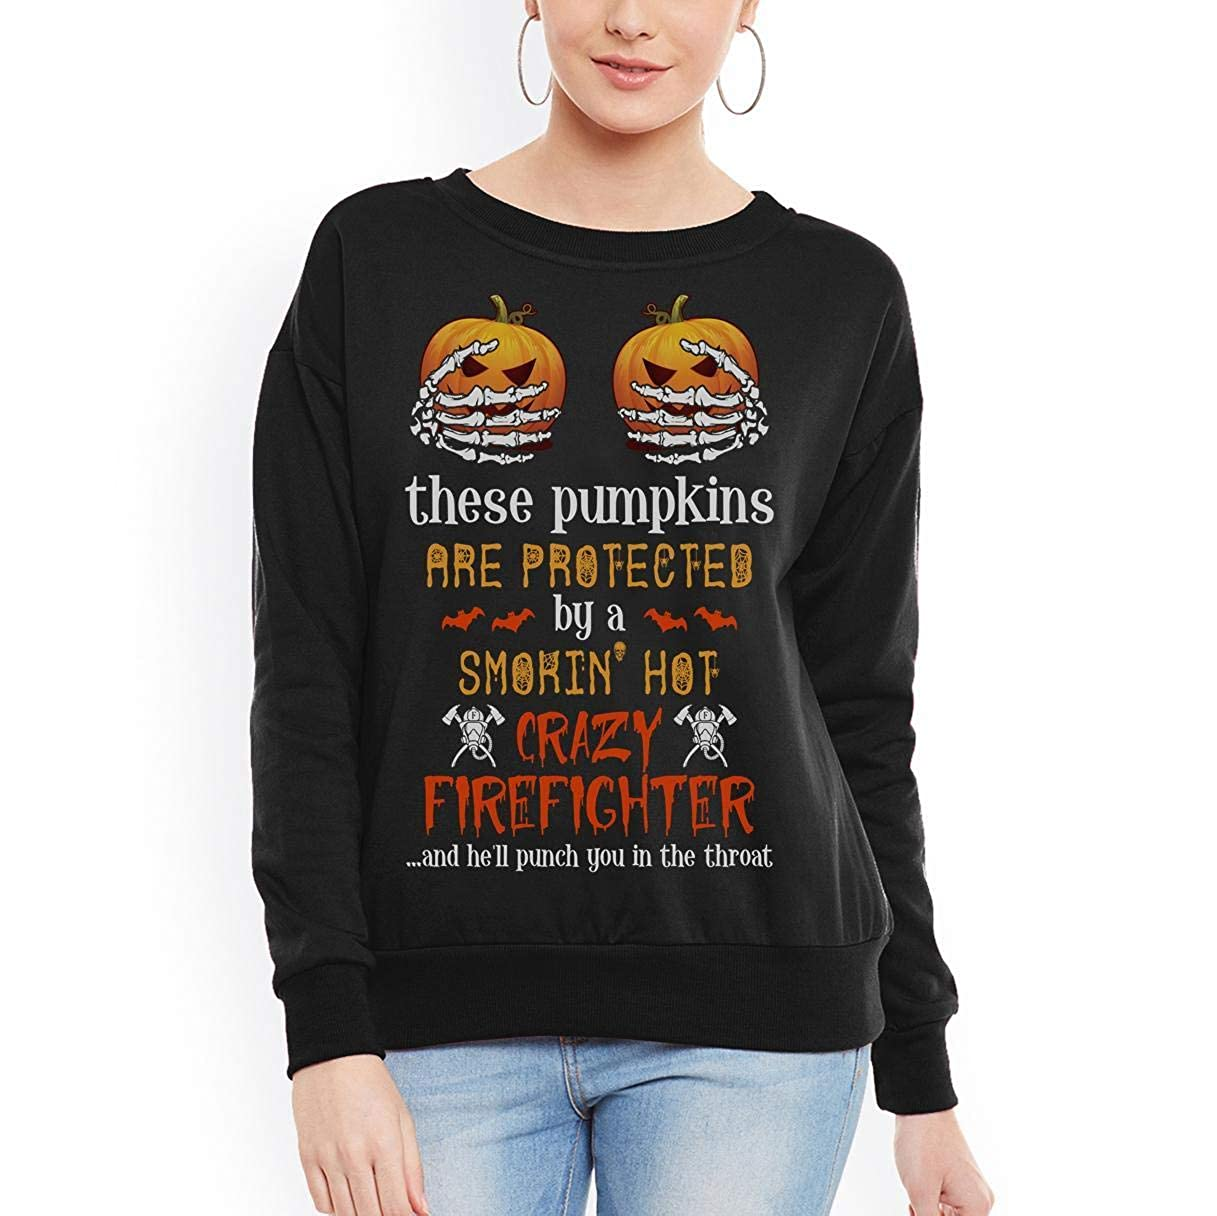 tee are Protected by A Smokin Hot Crazy Firefighter Unisex Sweatshirt